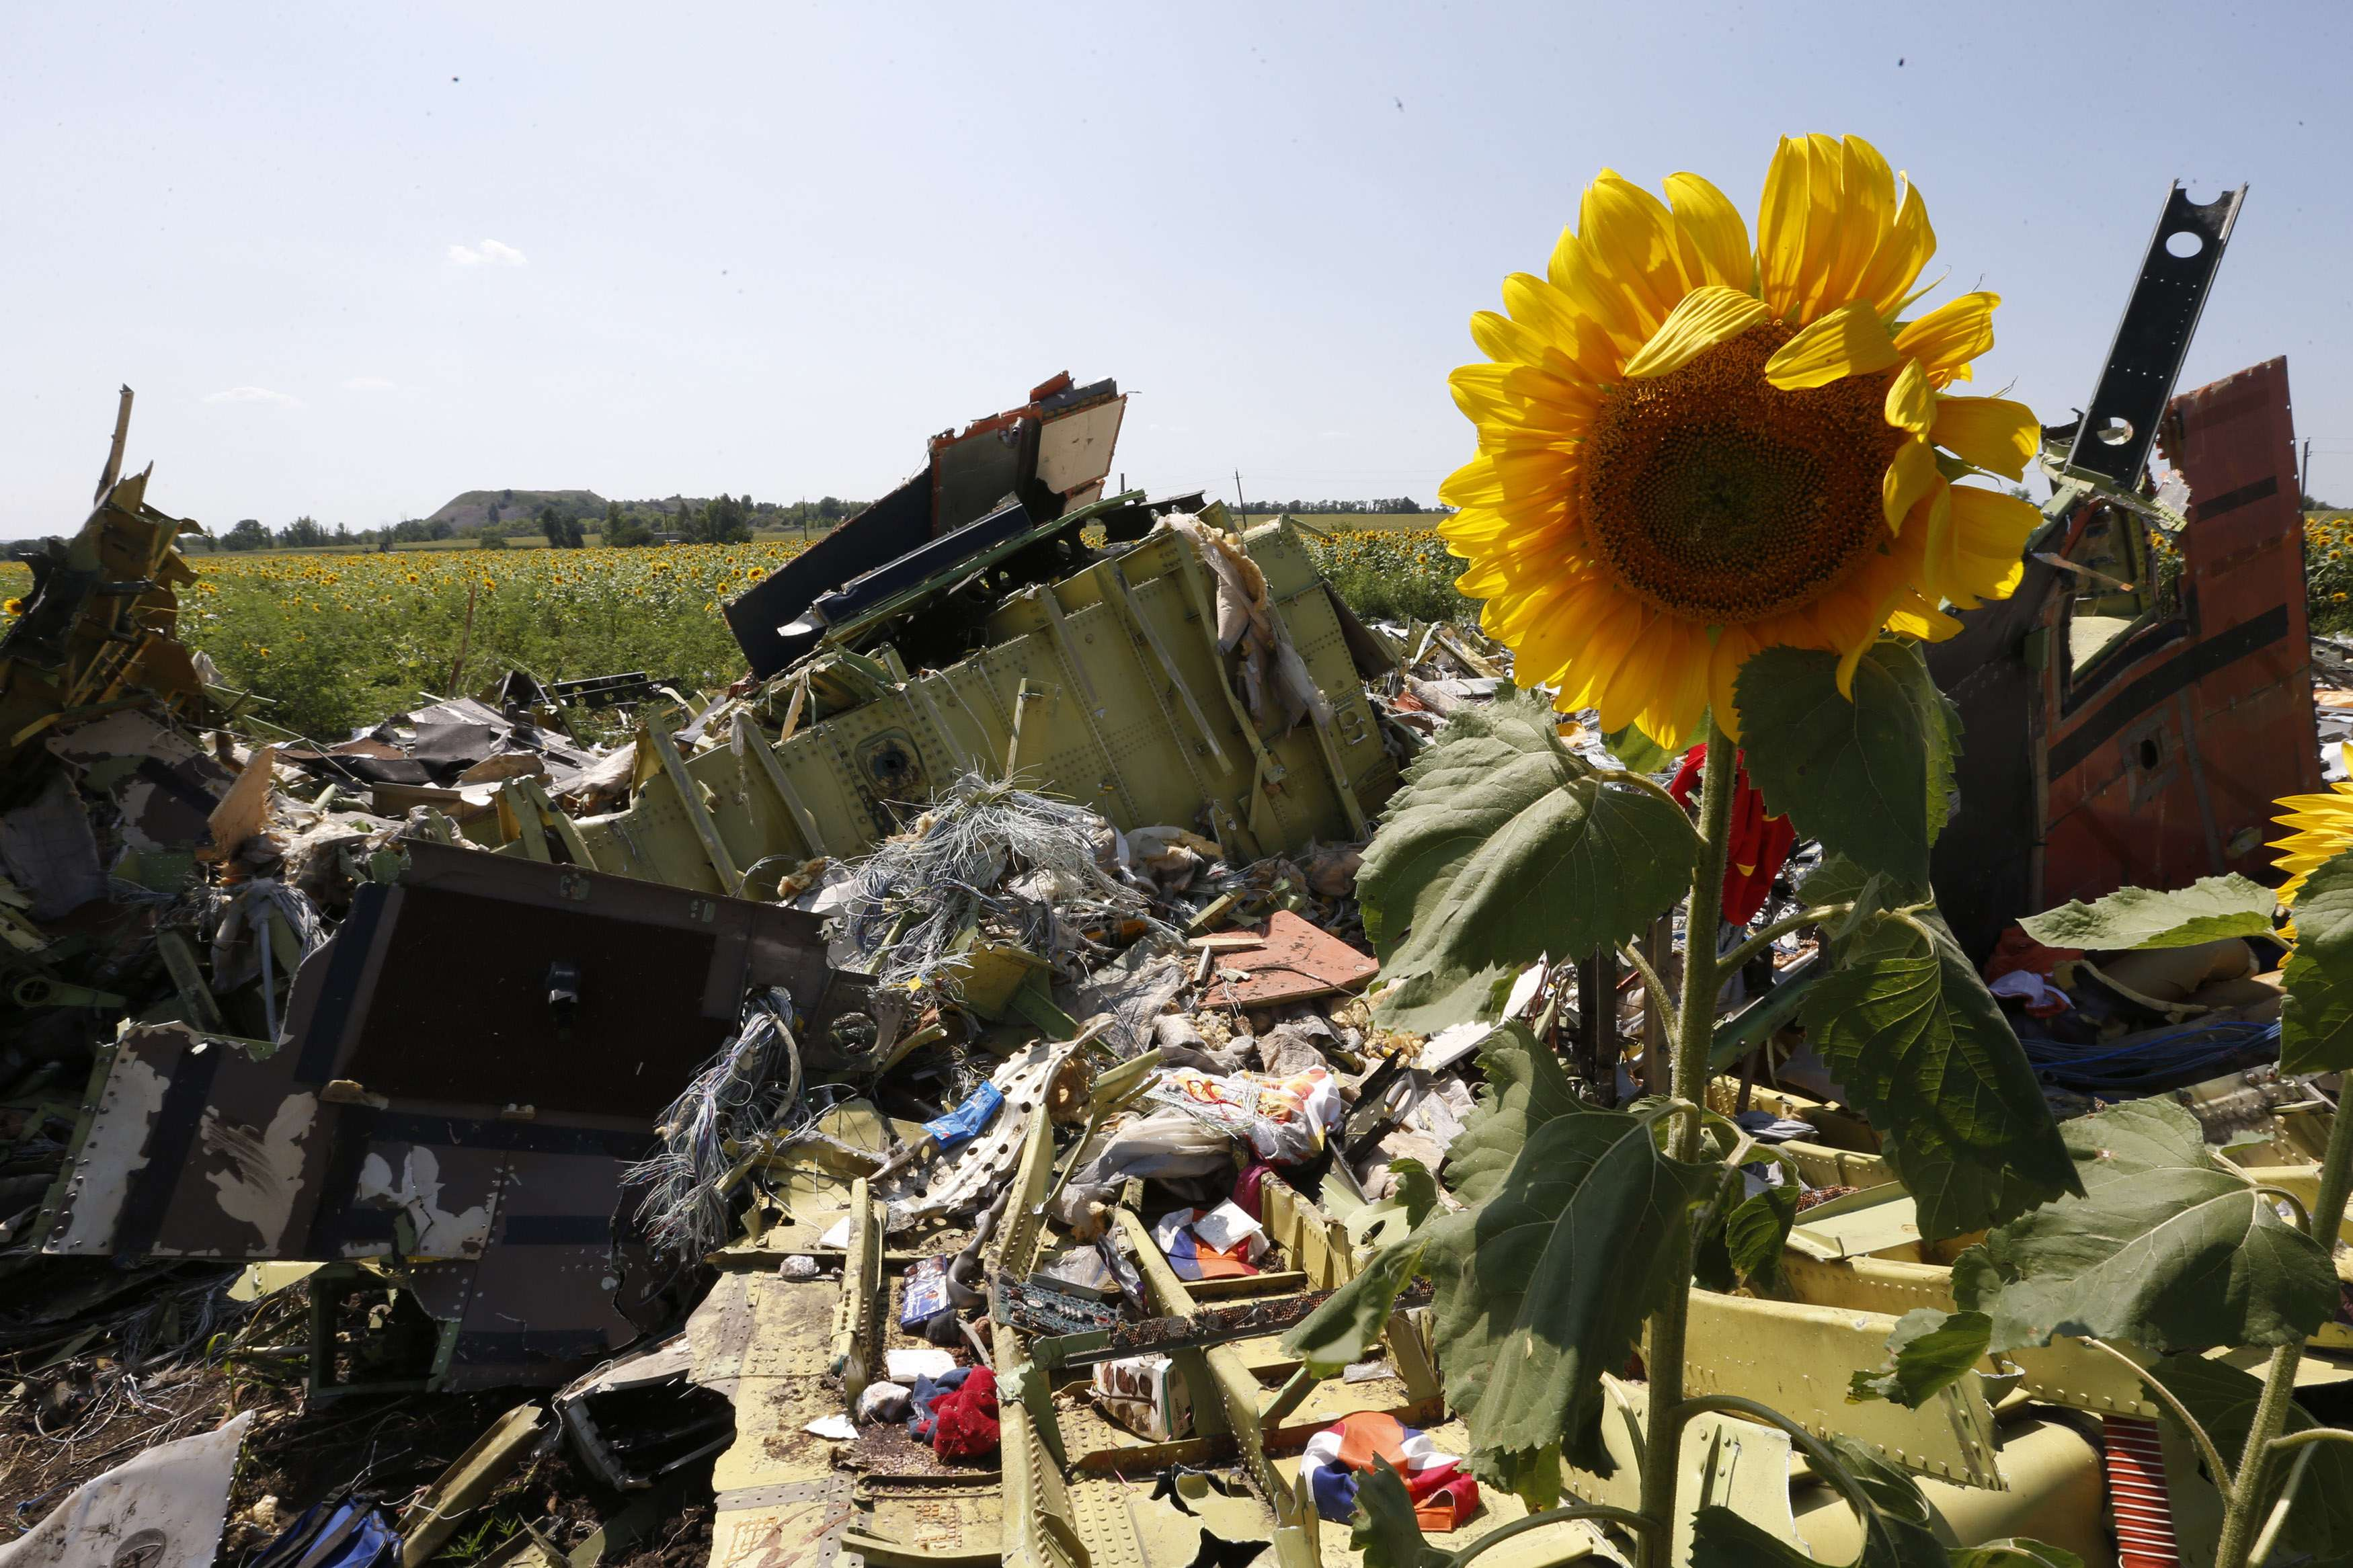 Australia says chance of MH17 site visit not good